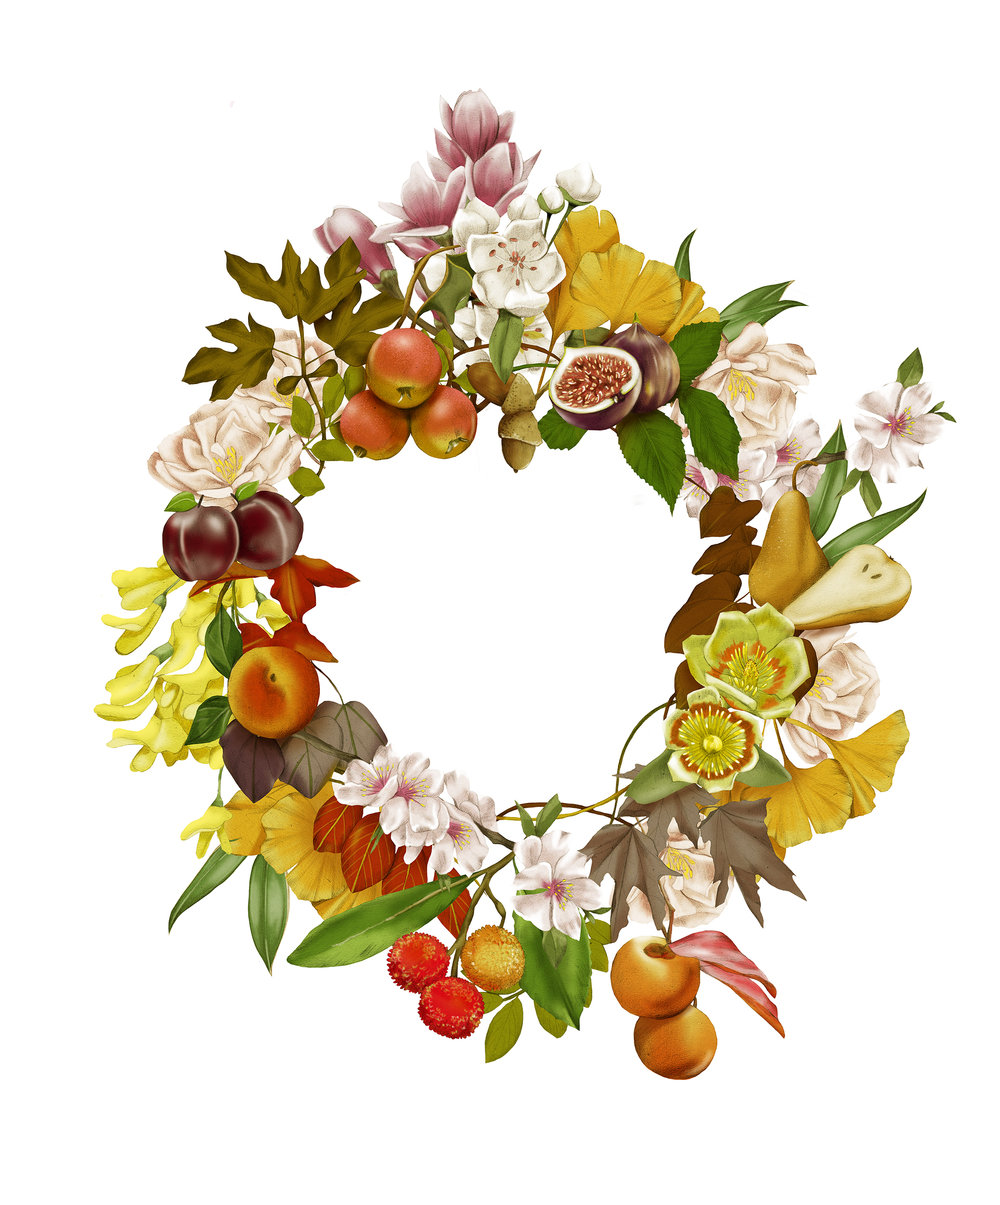 Kelly Thompson botanical illustration Flemings nursery wreath